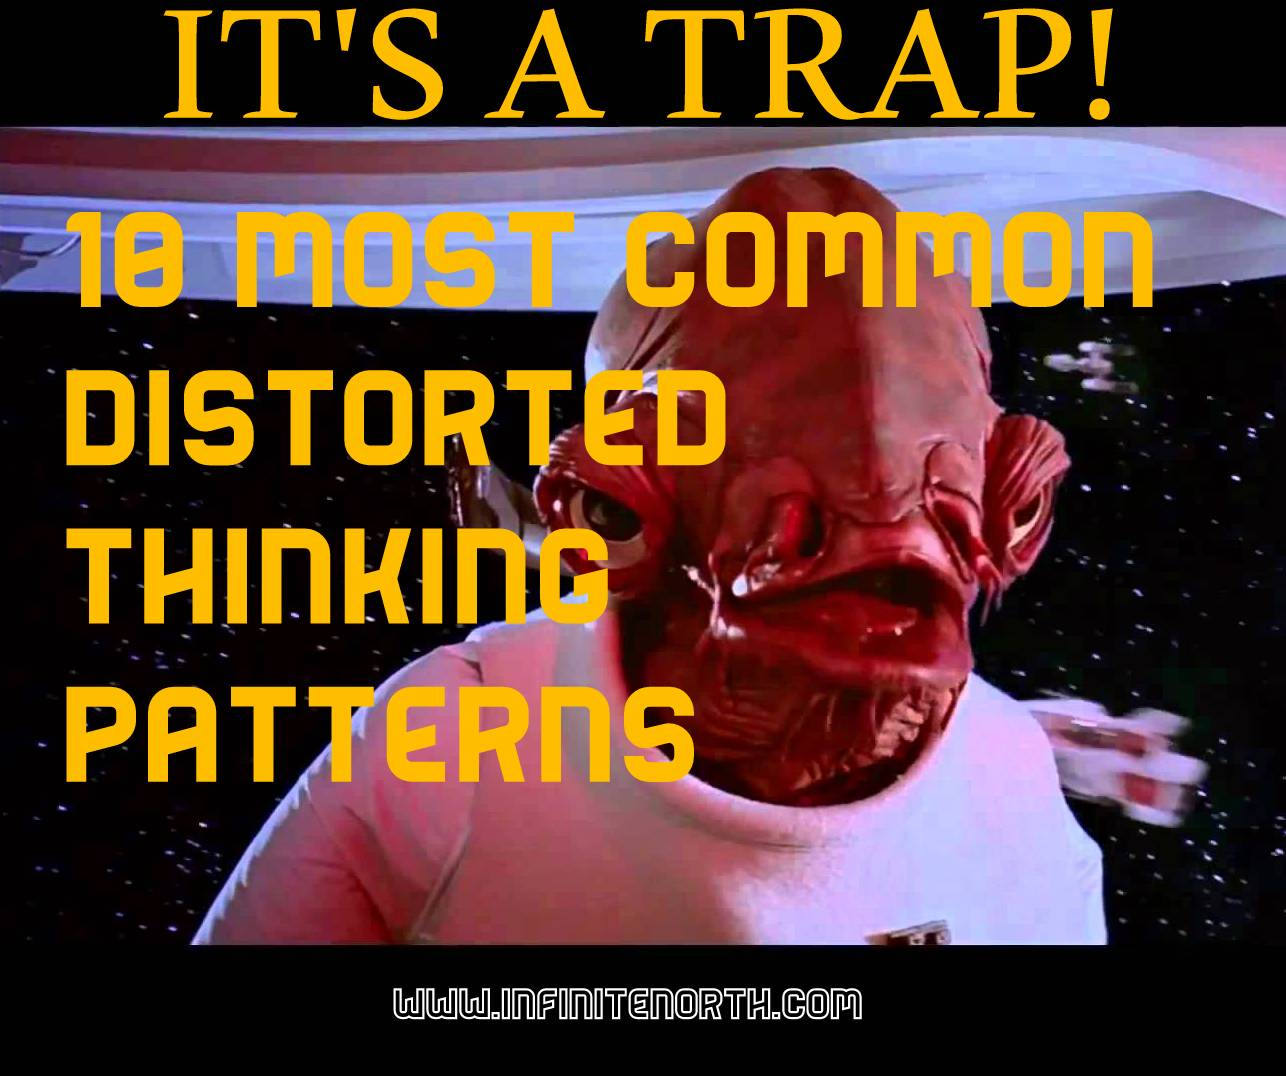 10 Most Common Distorted Thinking Patterns 2 Infinite North